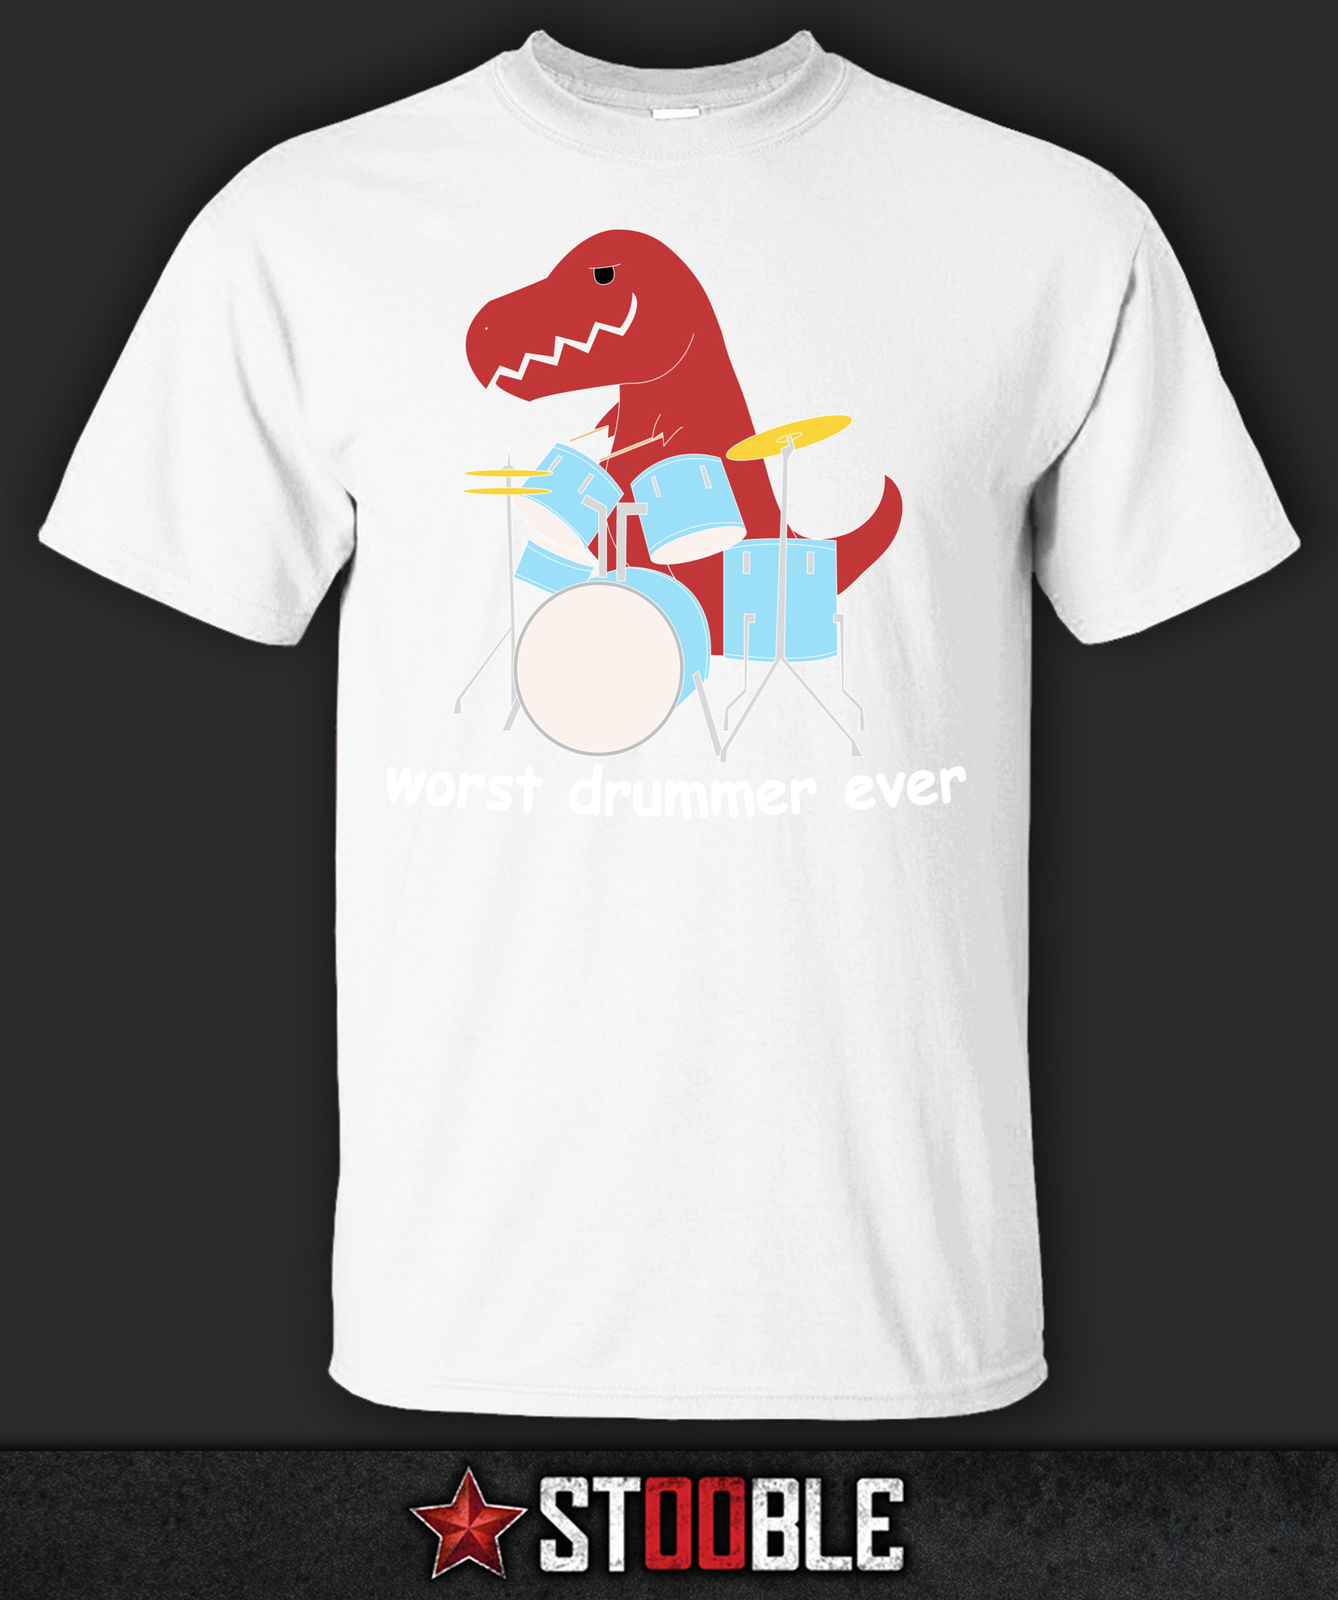 Worst Drummer Ever TRex T-Shirt - Direct from Stockist New T Shirts Funny Tops Tee New Unisex Funny Tops freeshipping image